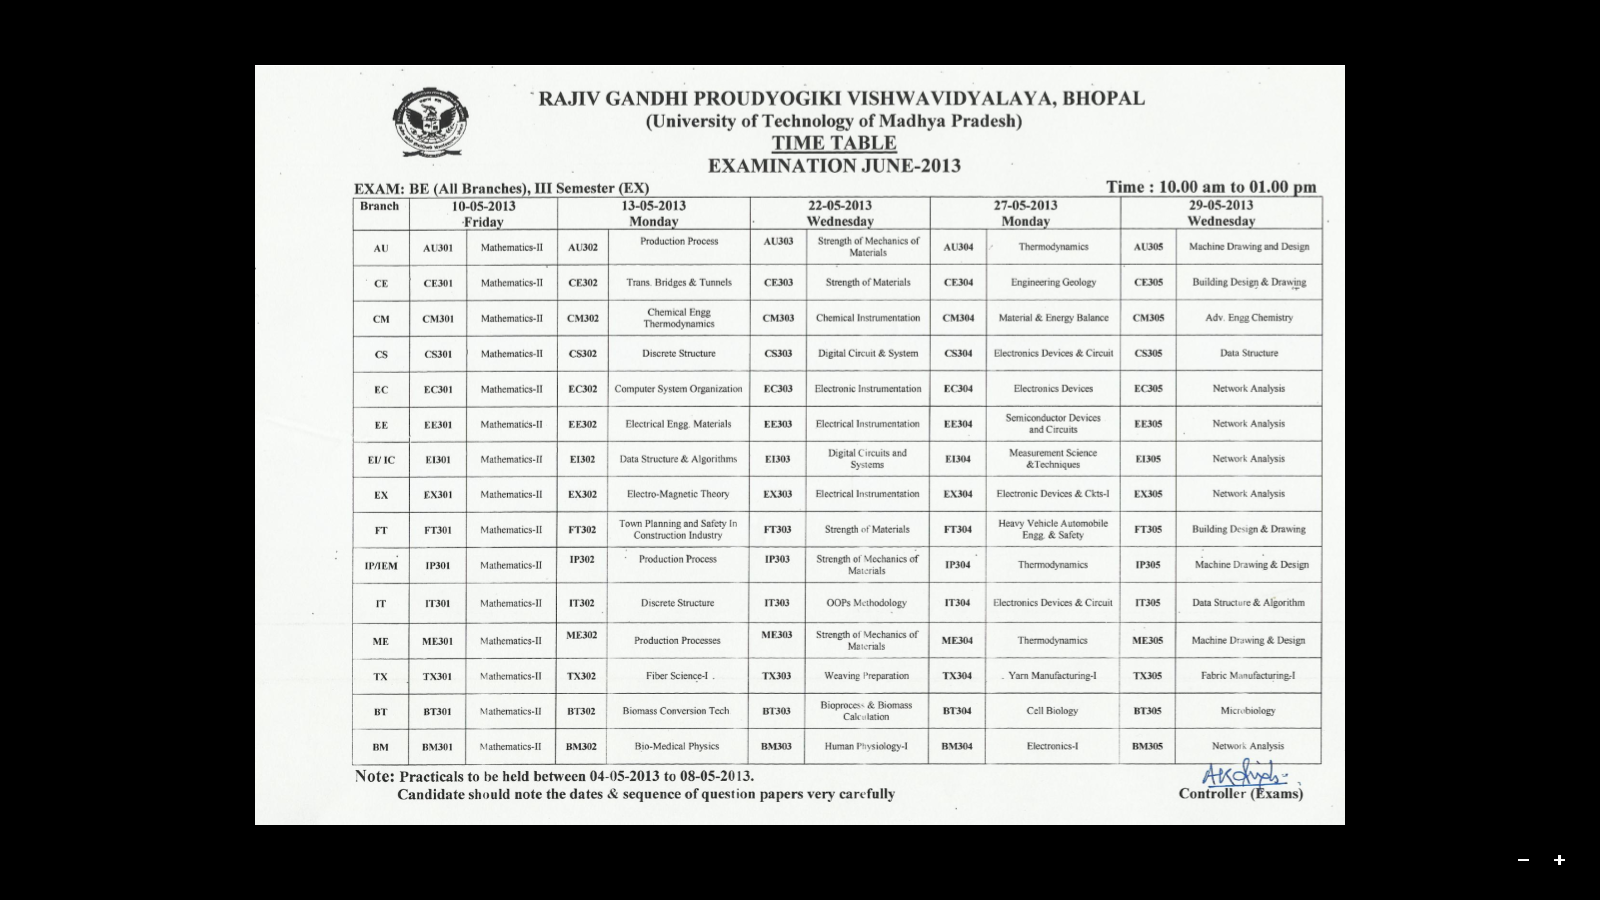 6th Sem Time Table Of Pin Rgpv Be Time Table 1st 2nd 3rd 4th 5th 6th 7th And 8th